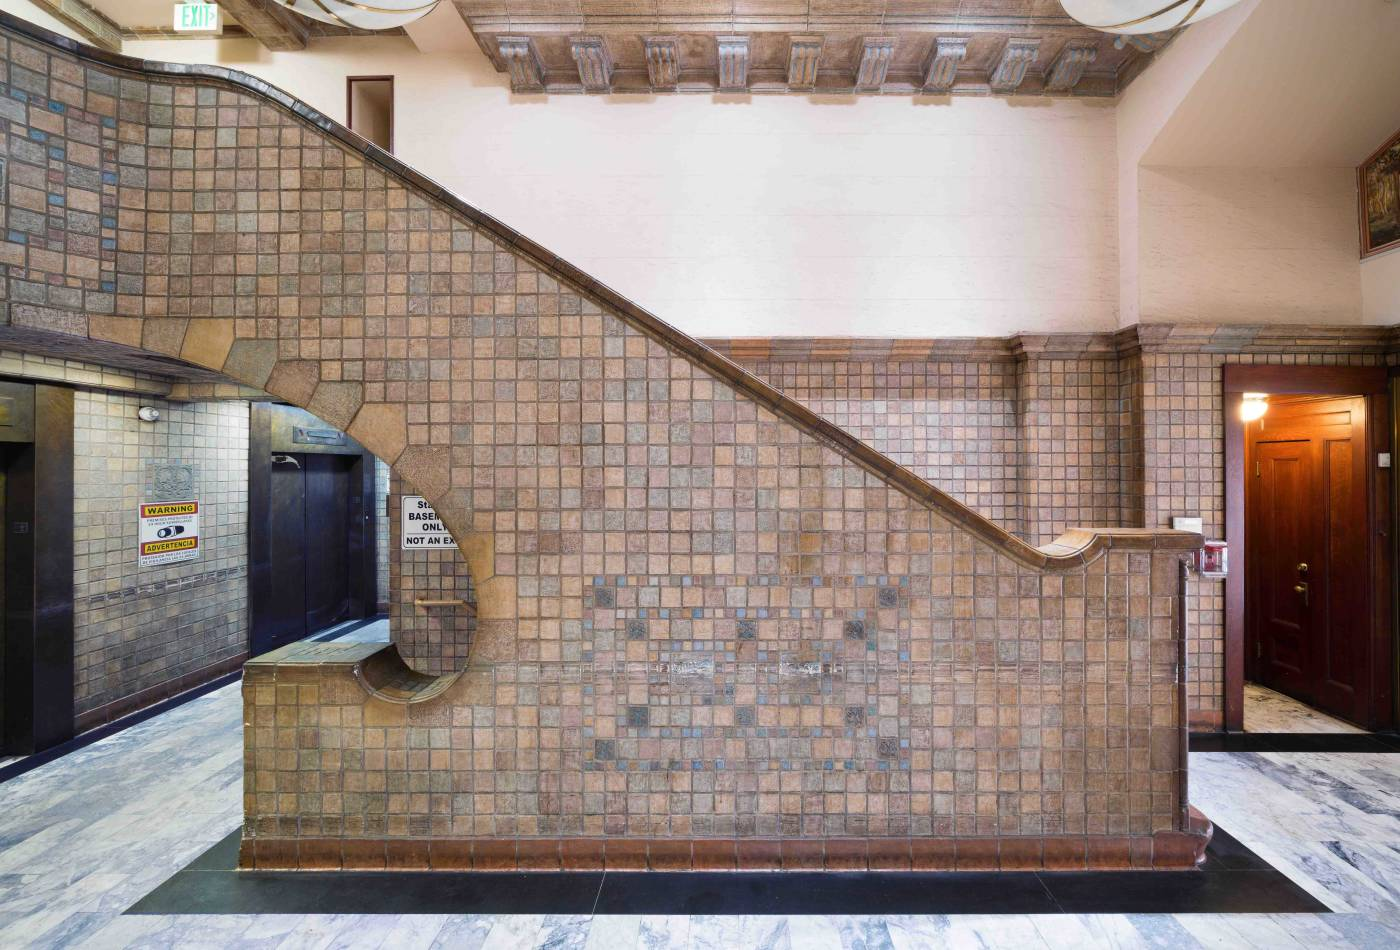 This 12-story, 84,000 sf tower, originally known as the Lane Mortgage Building, was designed by the Los Angeles architect Lester Loy Smith and completed in 1923. Among its original features are an entry lobby with tilework by renowned artisan Ernest Batchelder.